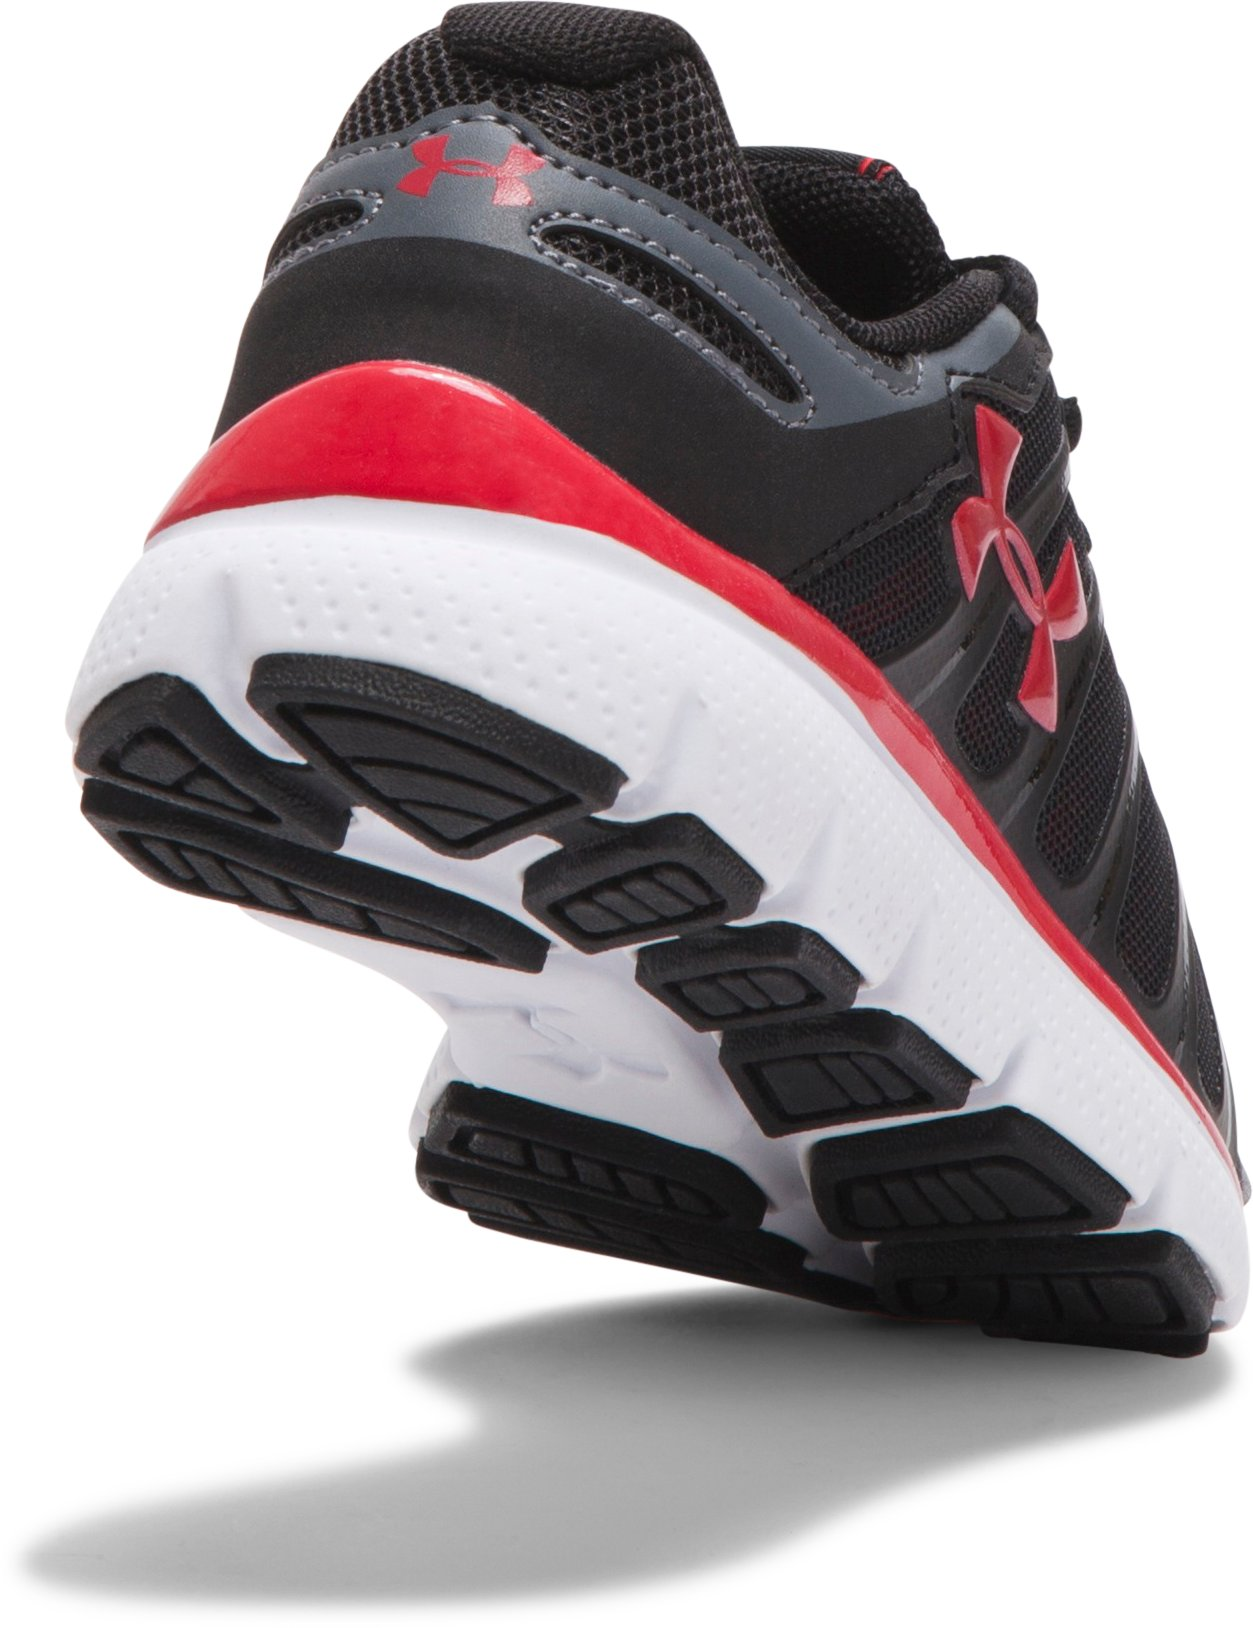 Boys' Pre-School UA Pulse II Shoes, Black